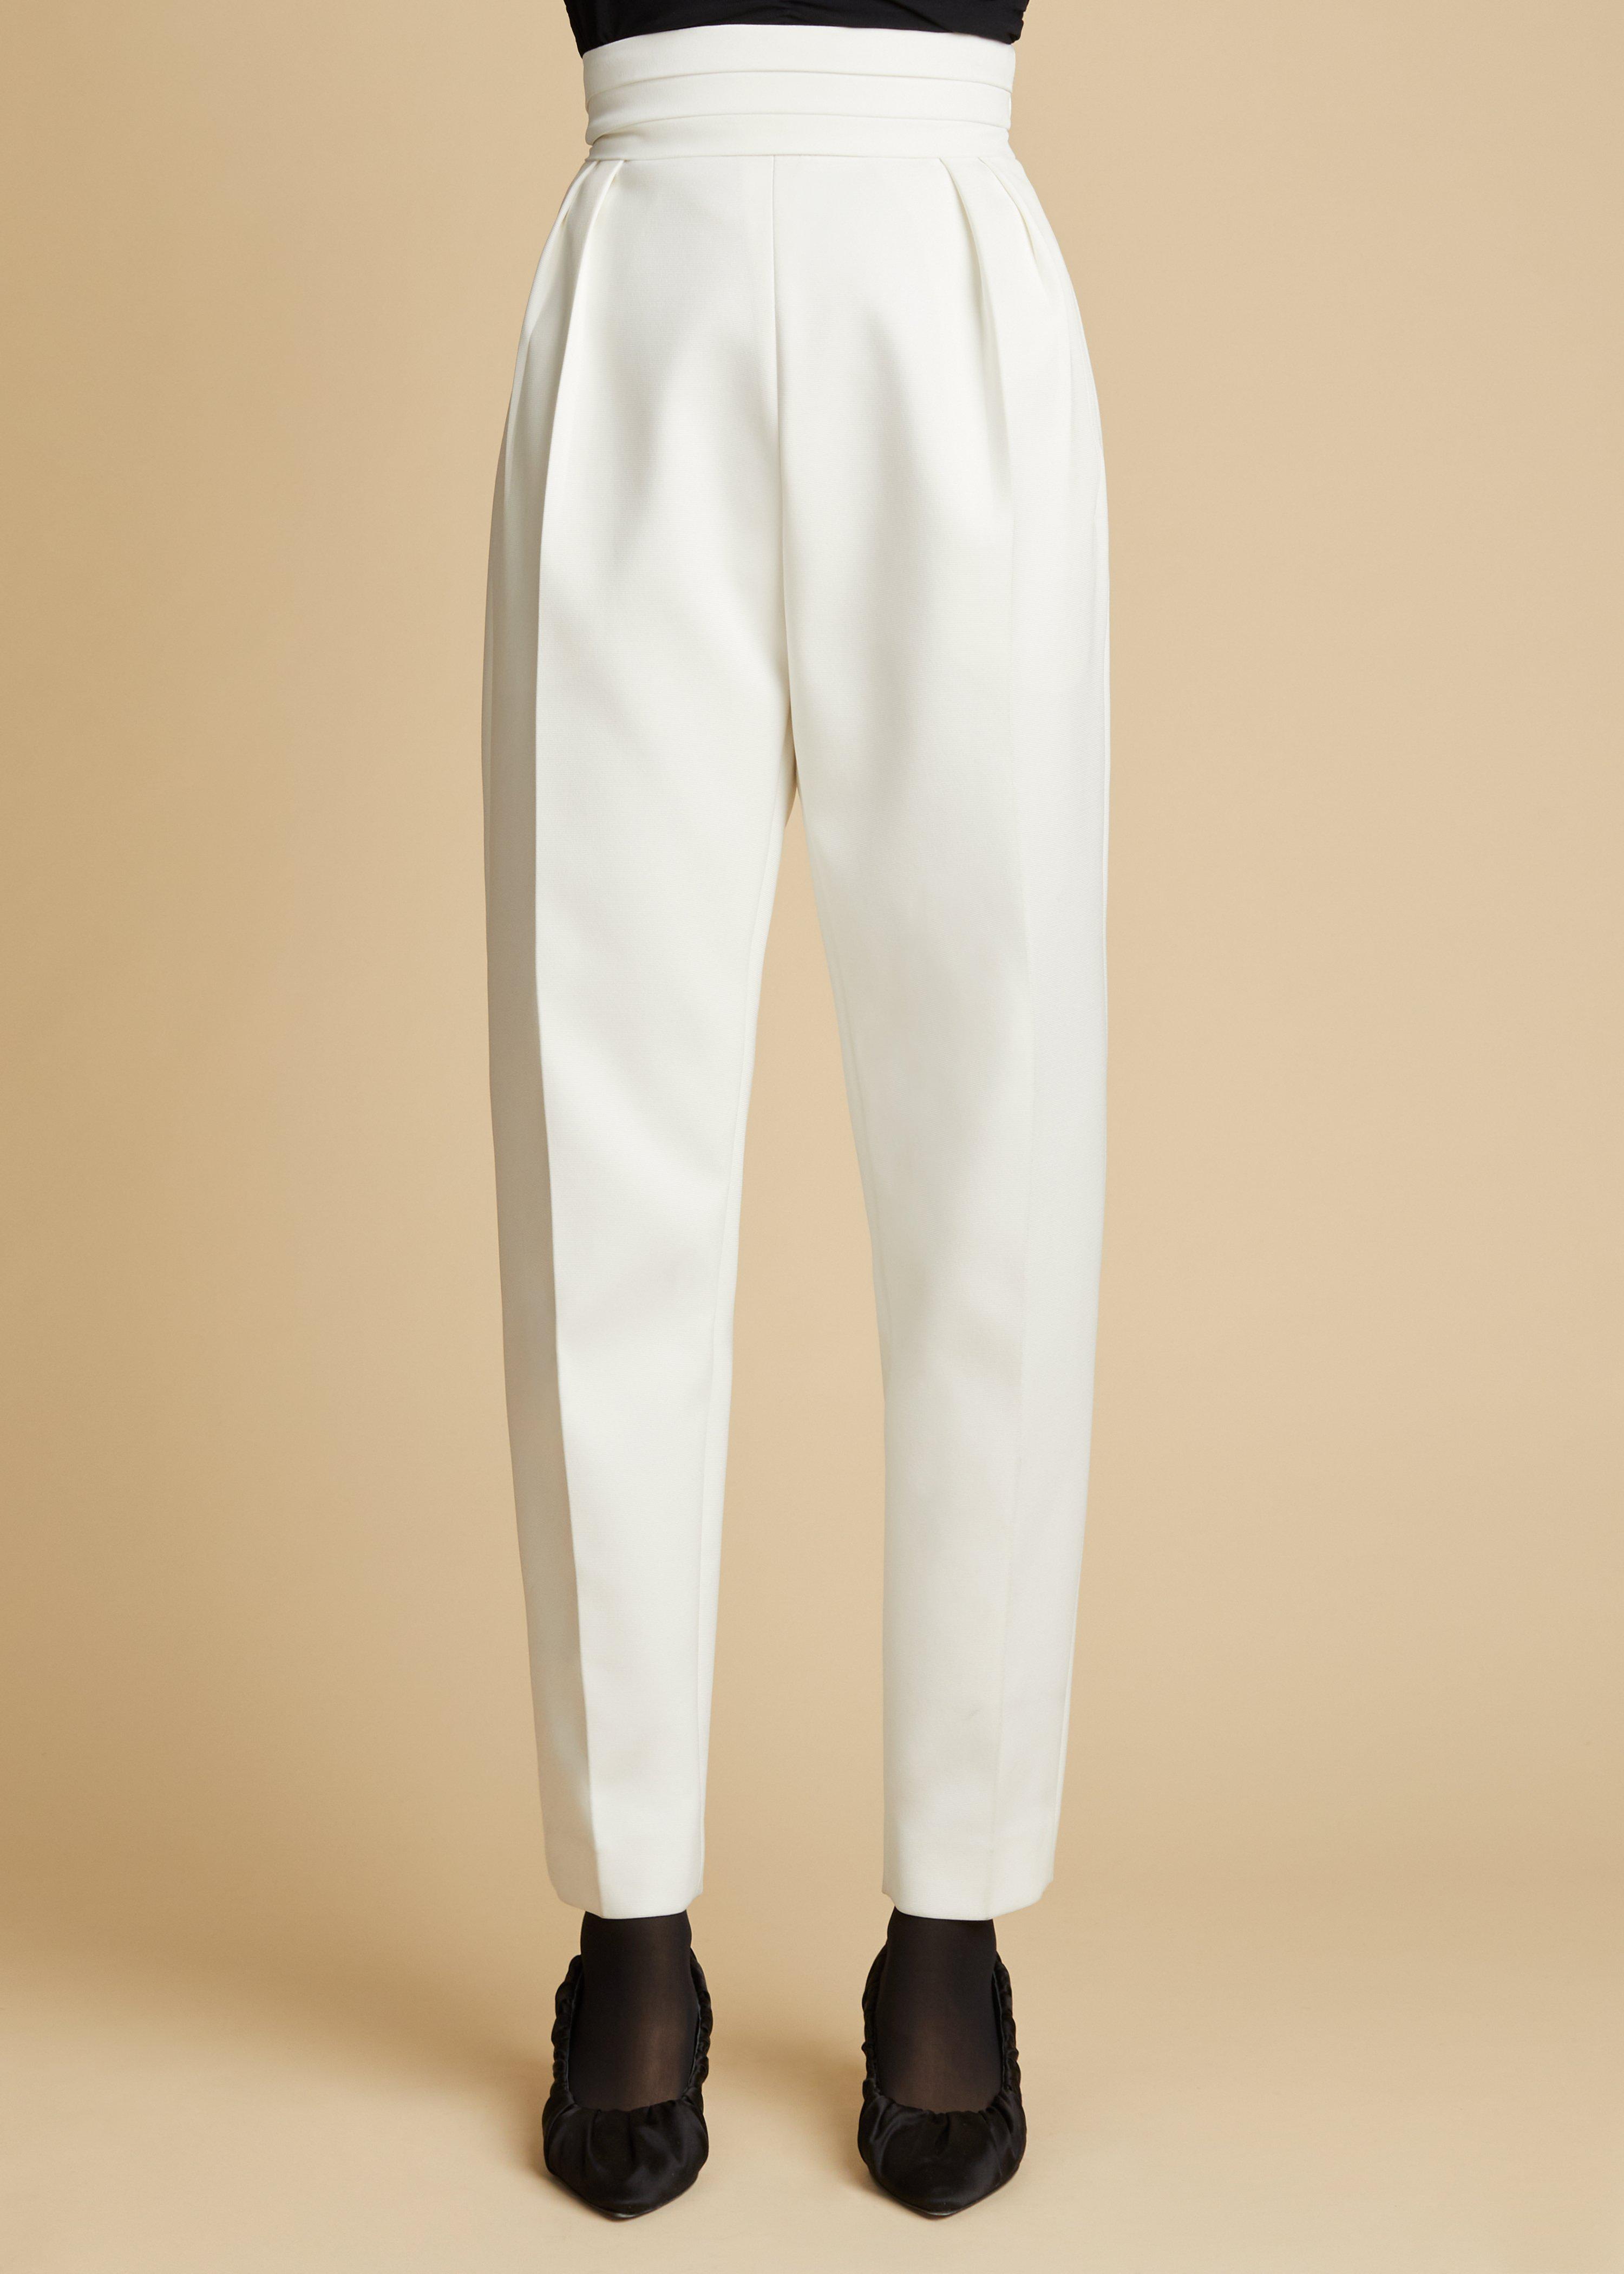 The Connelly Pant in Ivory 1